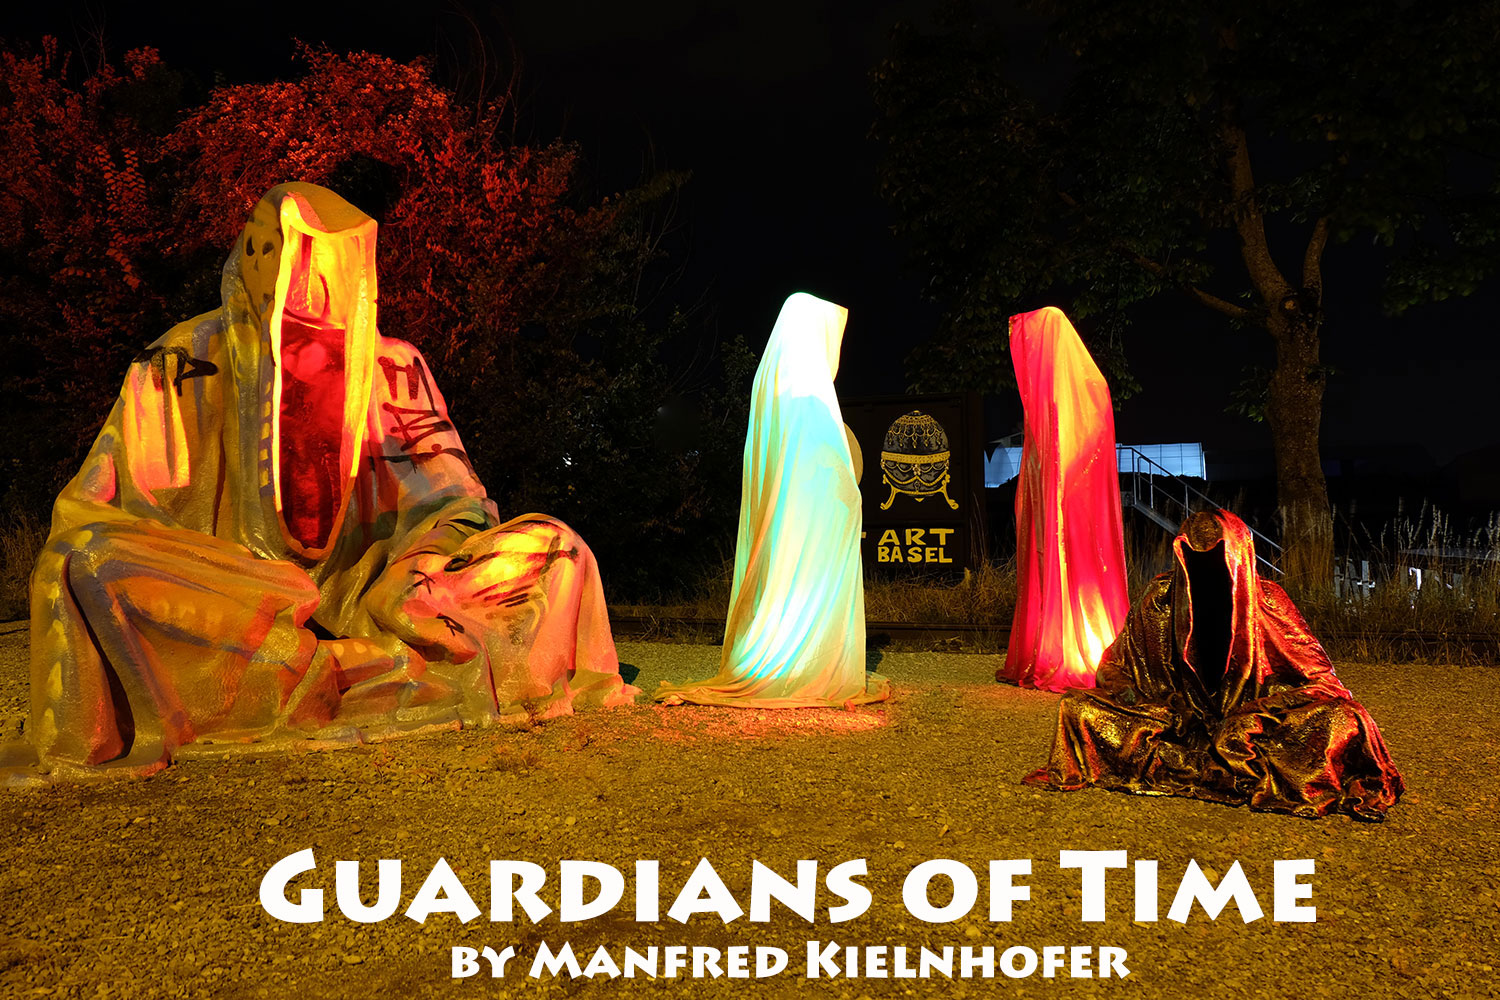 artbasel-swiss-scope-art-ghost-bice-guardians-of-time-manfred-kili-kielnhofer-large-scale-contemporary-art-design-sculpture-statue-arts-arte-5008